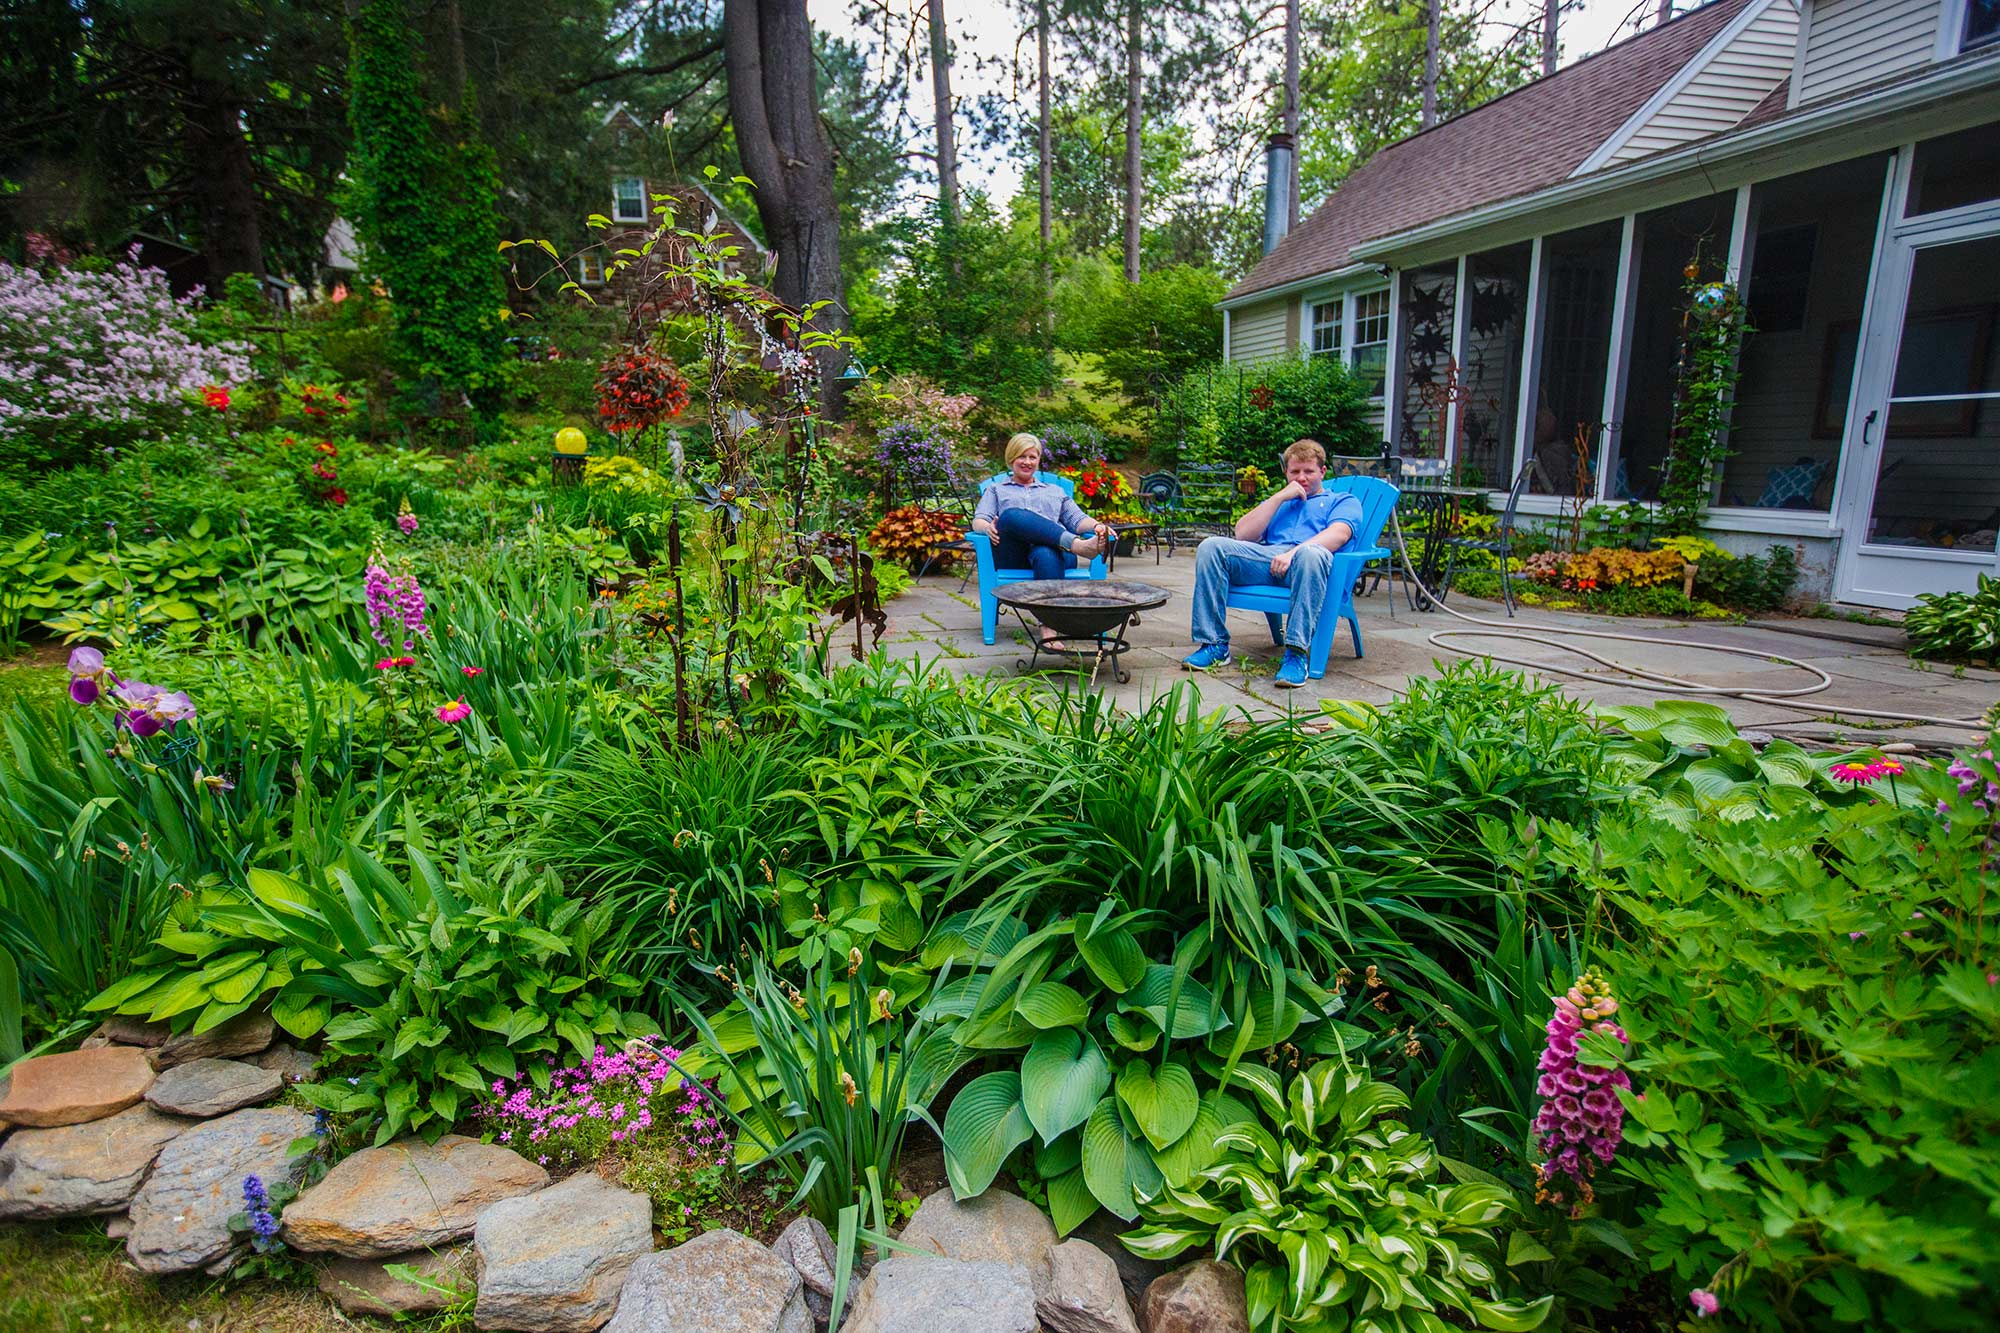 Backyard Garden, Bloomfield, CT - 5/25/15